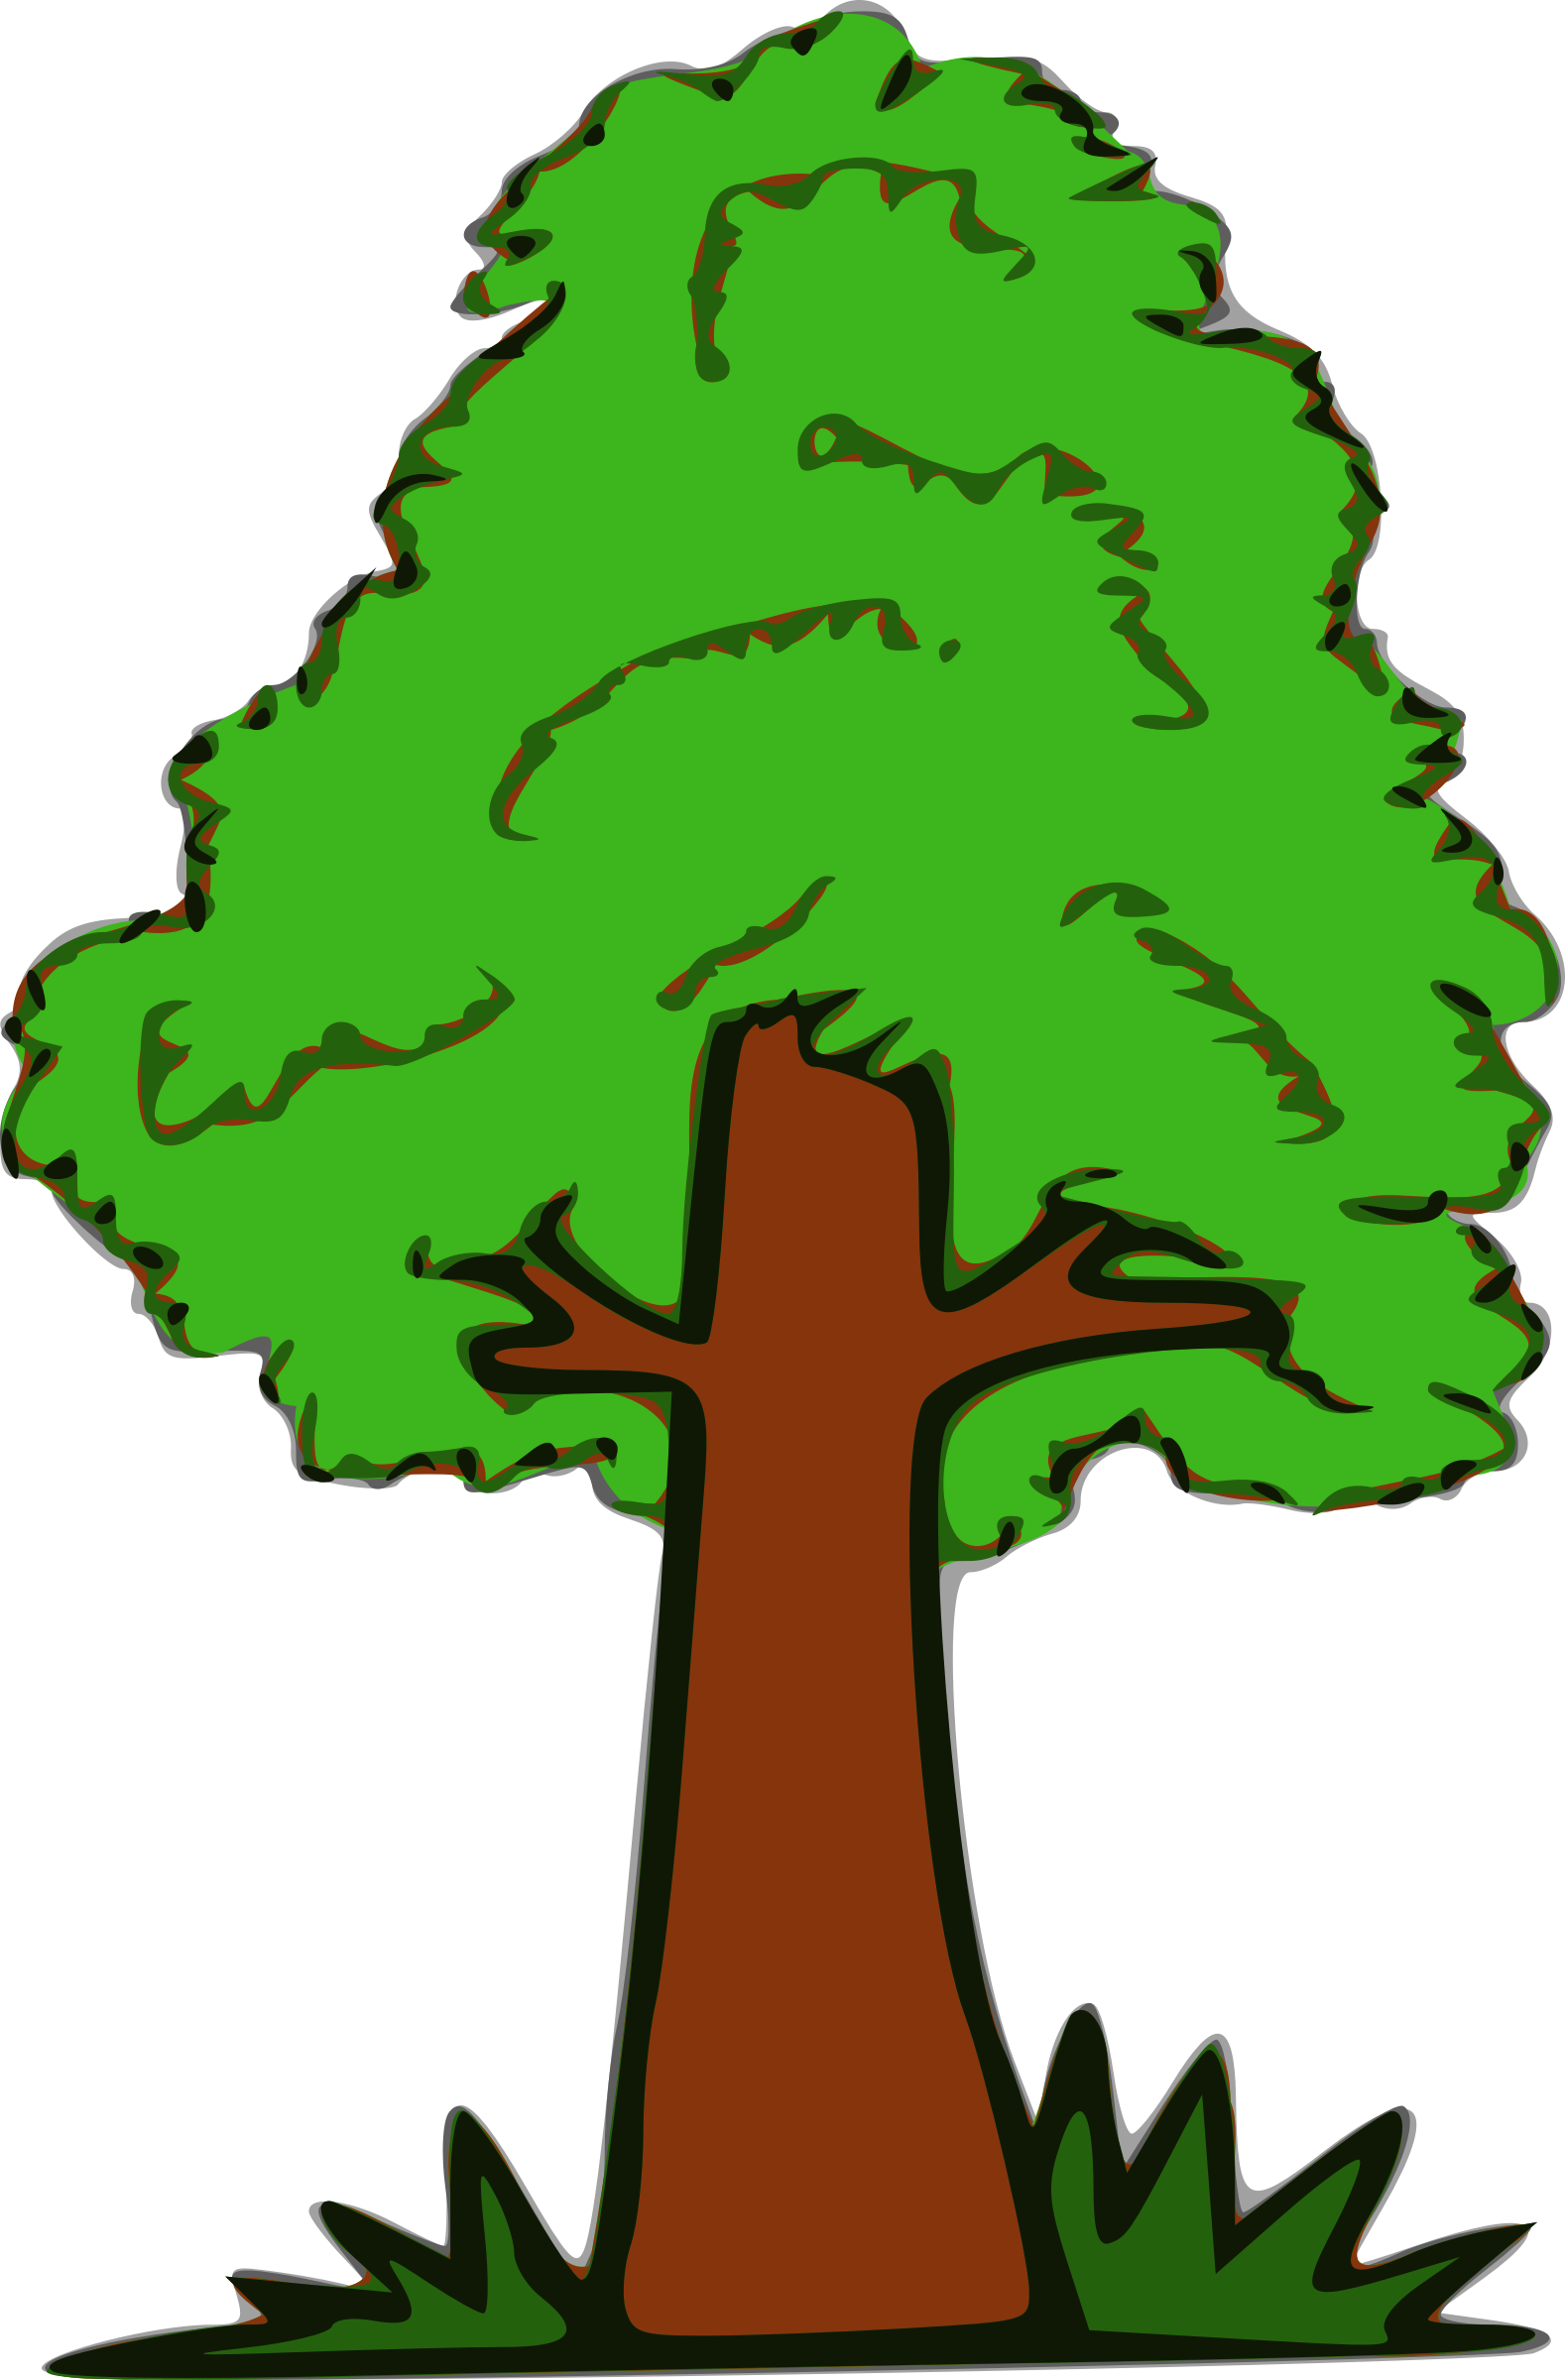 Tree and grass clipart clipart free stock Clipart - Simple Tree clipart free stock